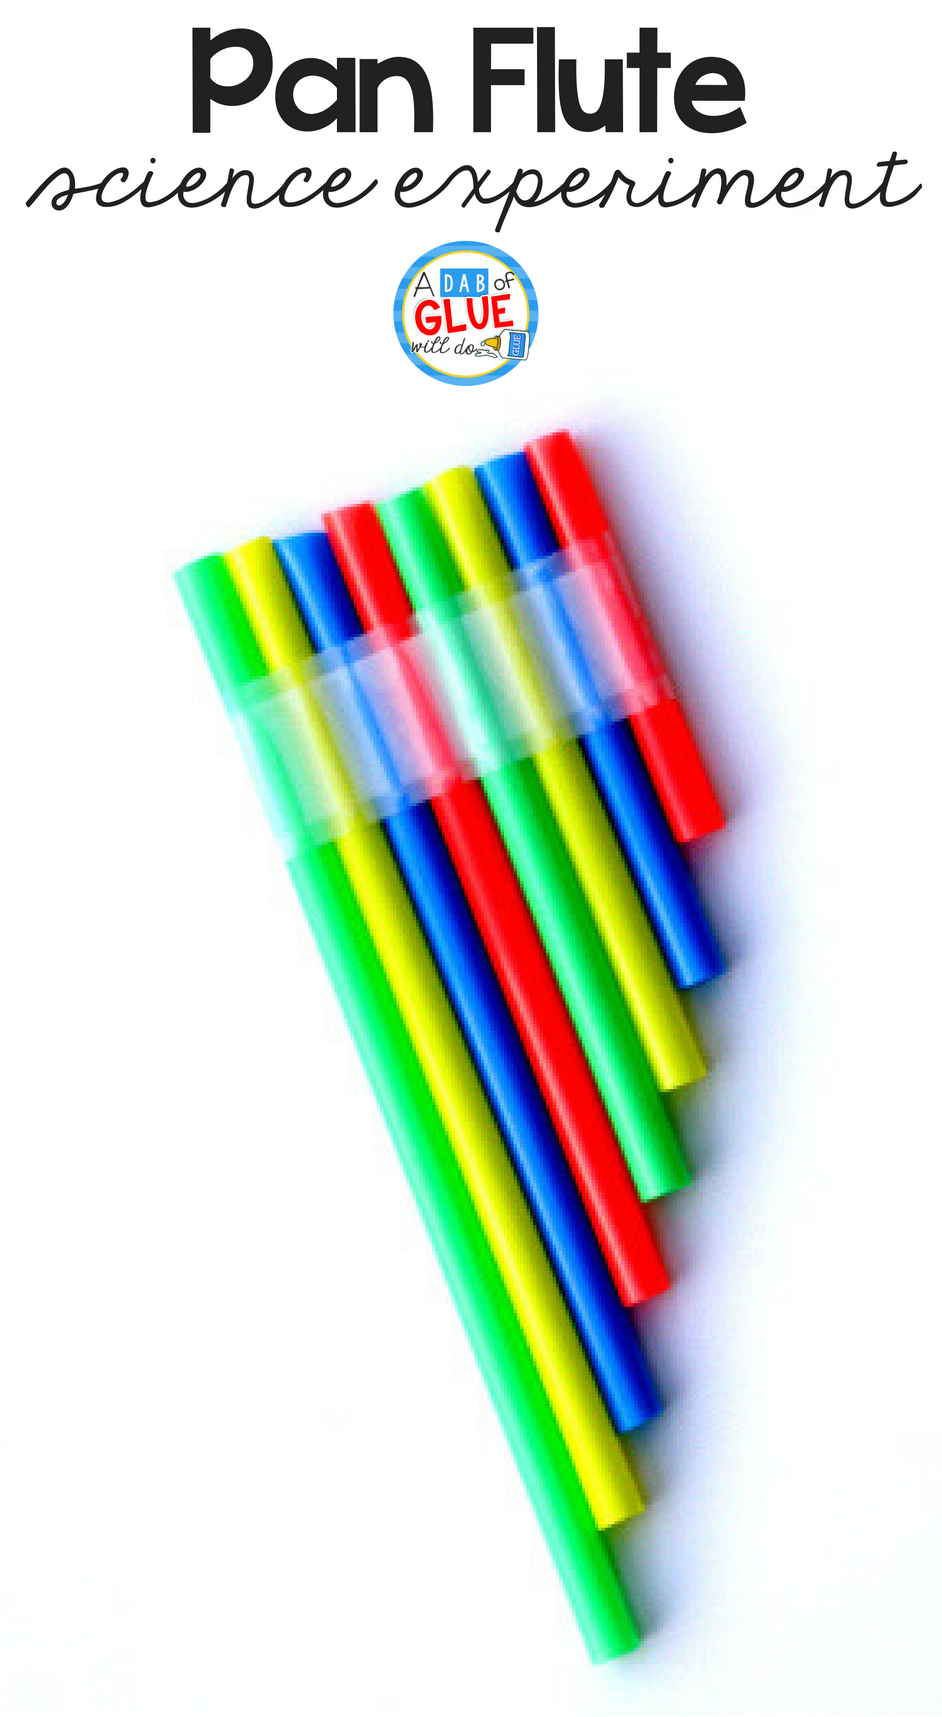 Make a straw pan flute using a few drinking straws and tape. This is the perfect activity to accompany a lesson on sound, five senses, or music.